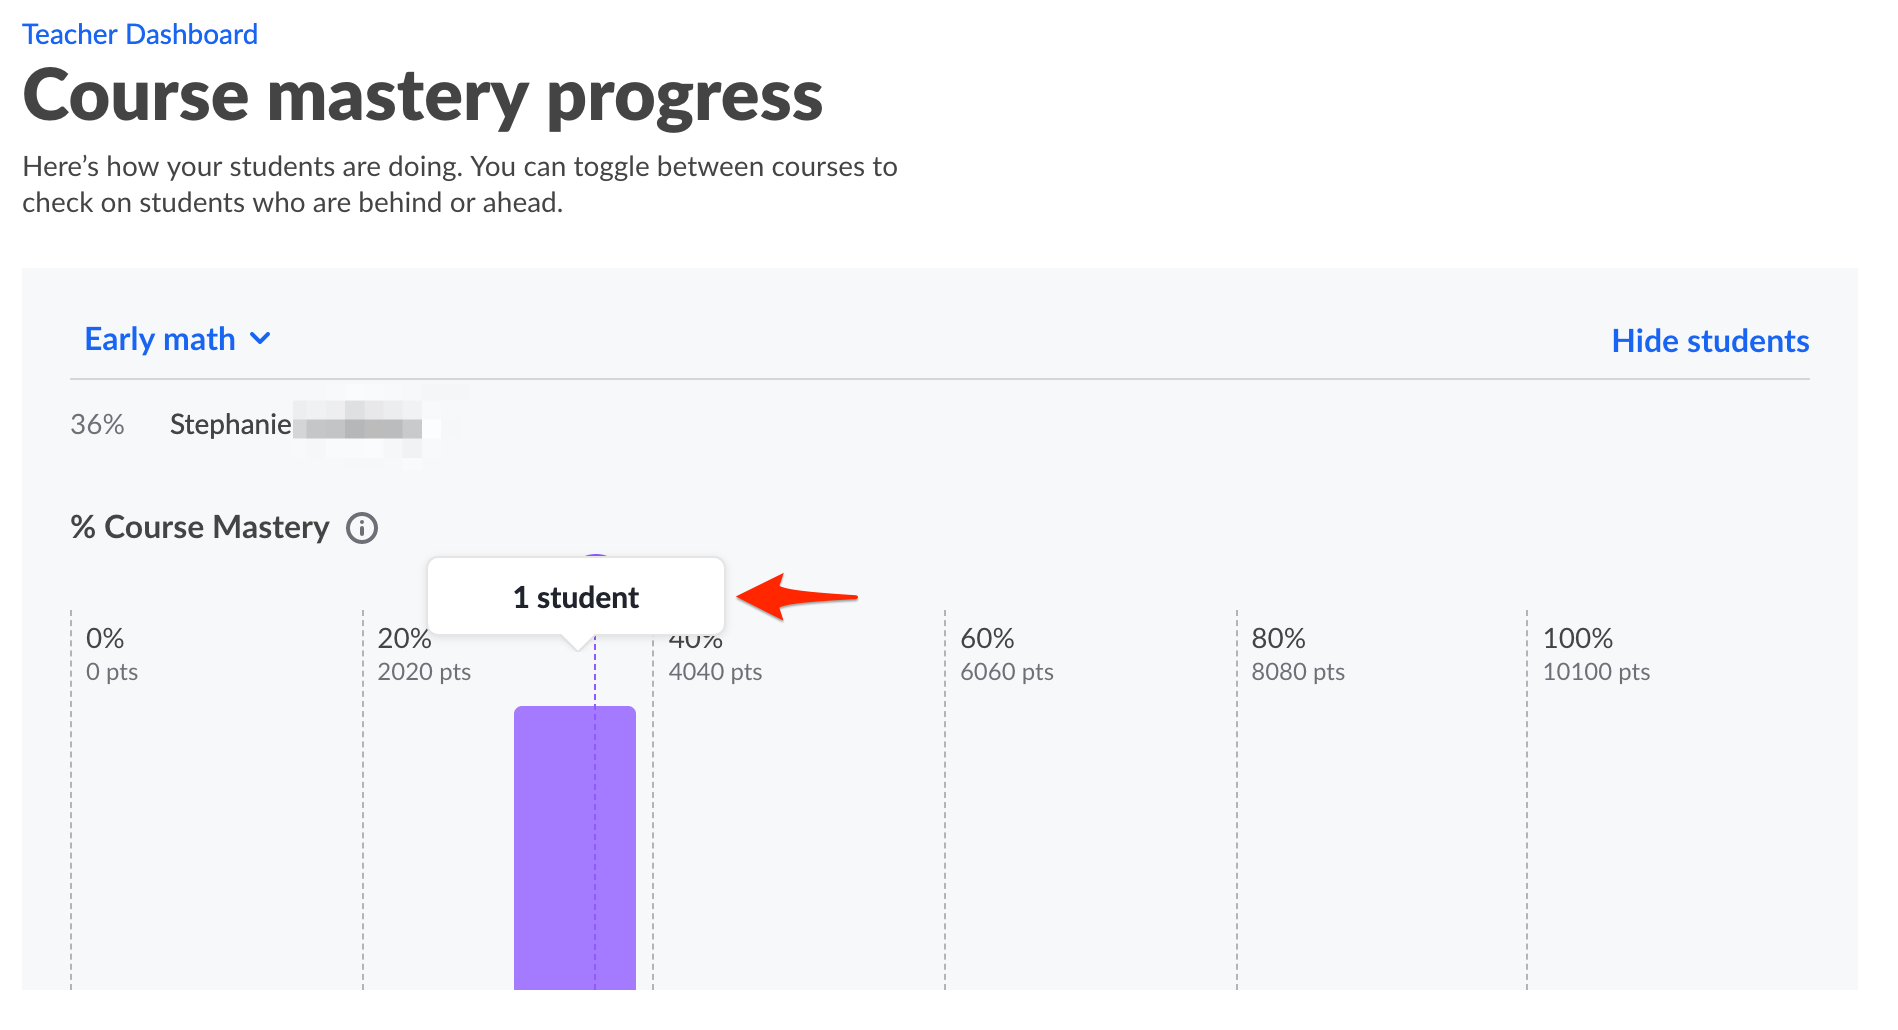 Mastery_Progress_by_Student_Number.png